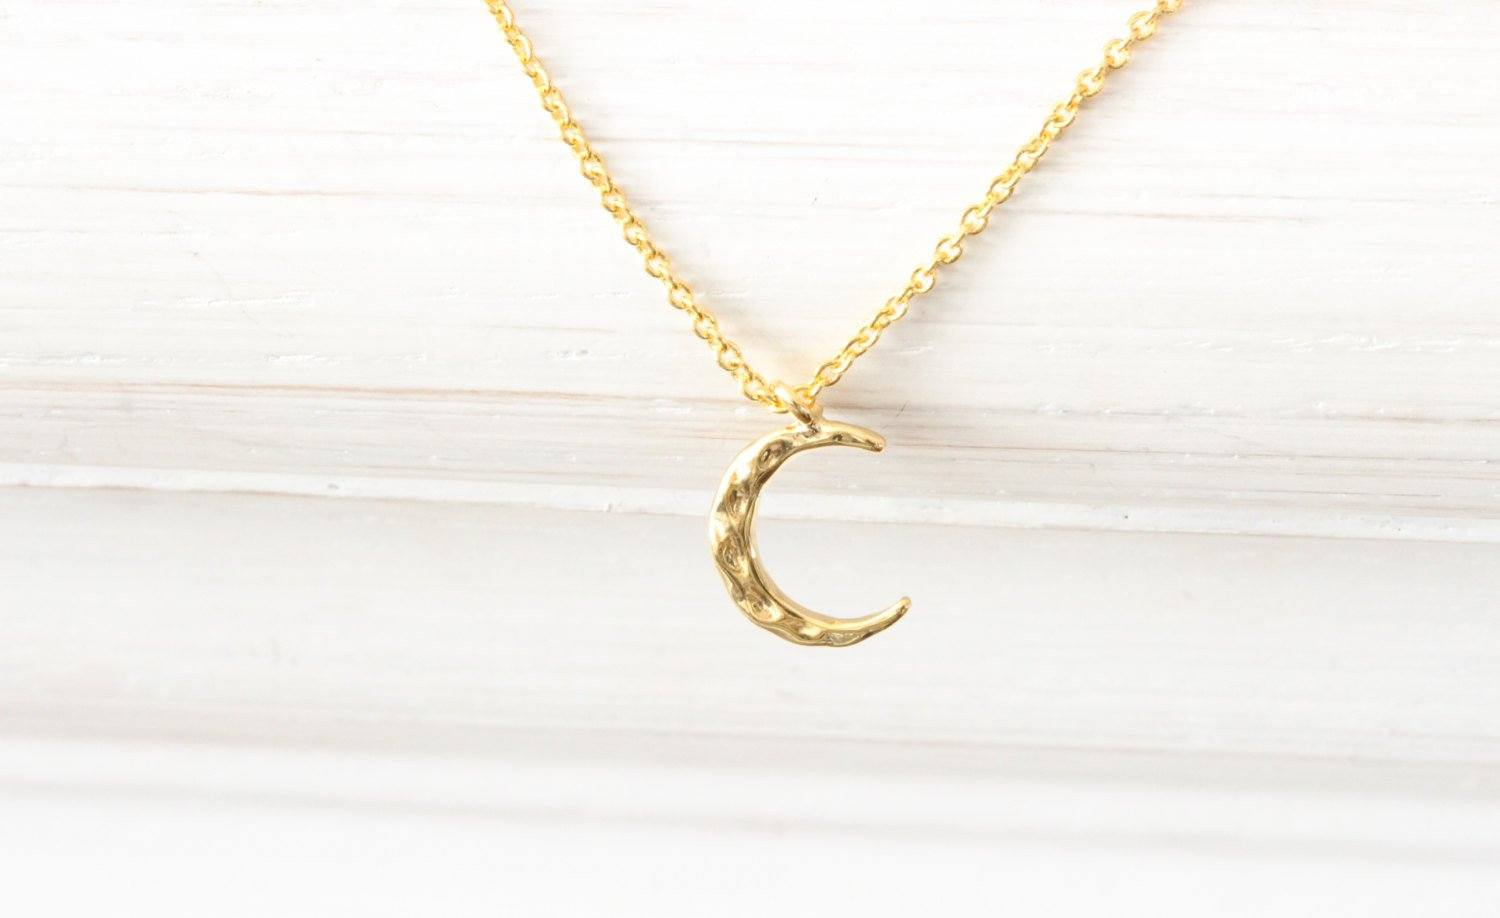 Gold Moon Phase Crescent Moon Necklace, Hammered New Moon, Tin Beautiz